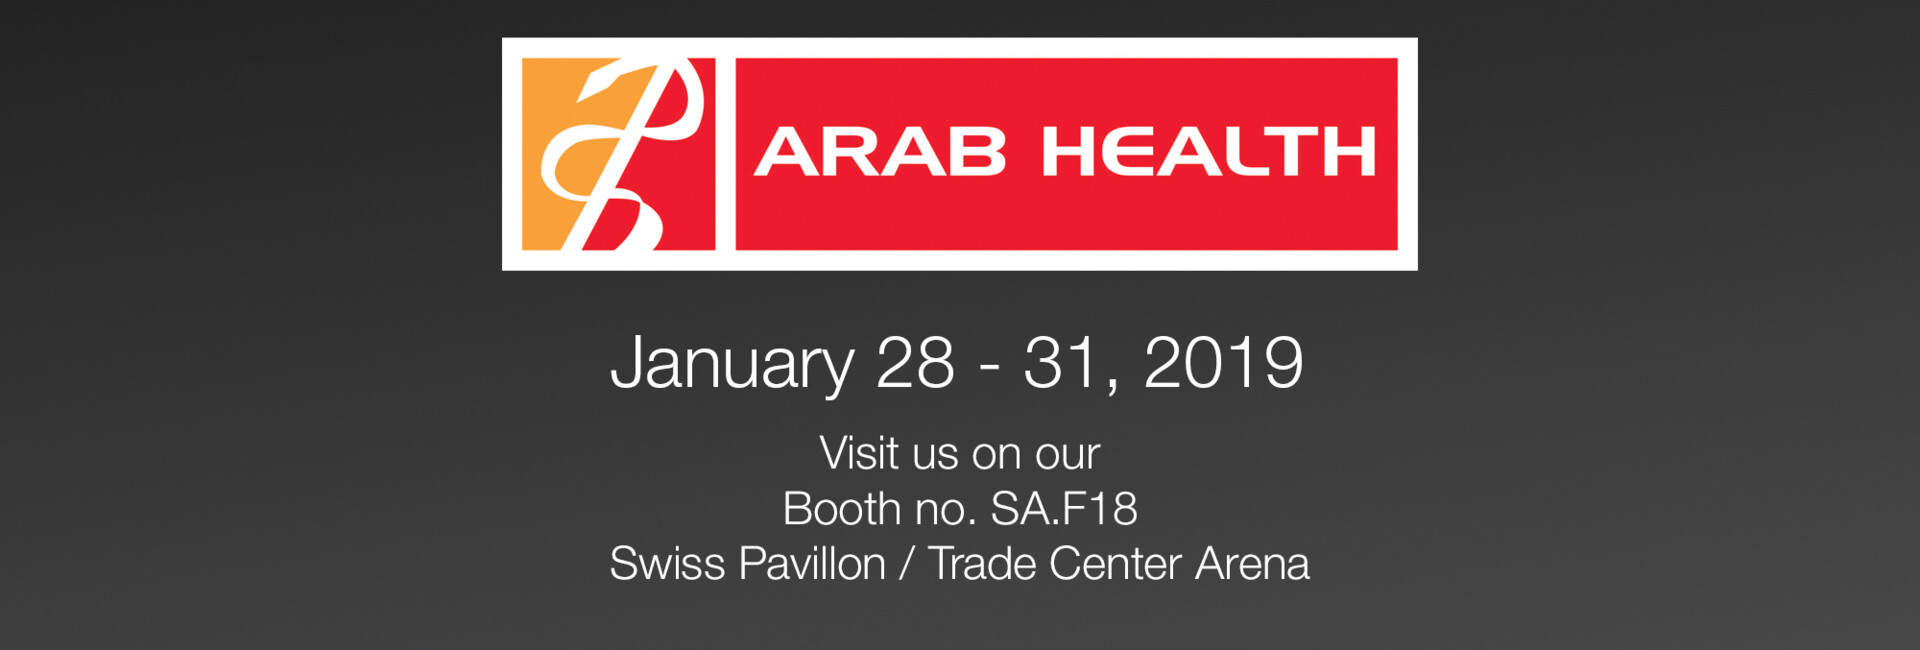 News-header-arabhealth-2018